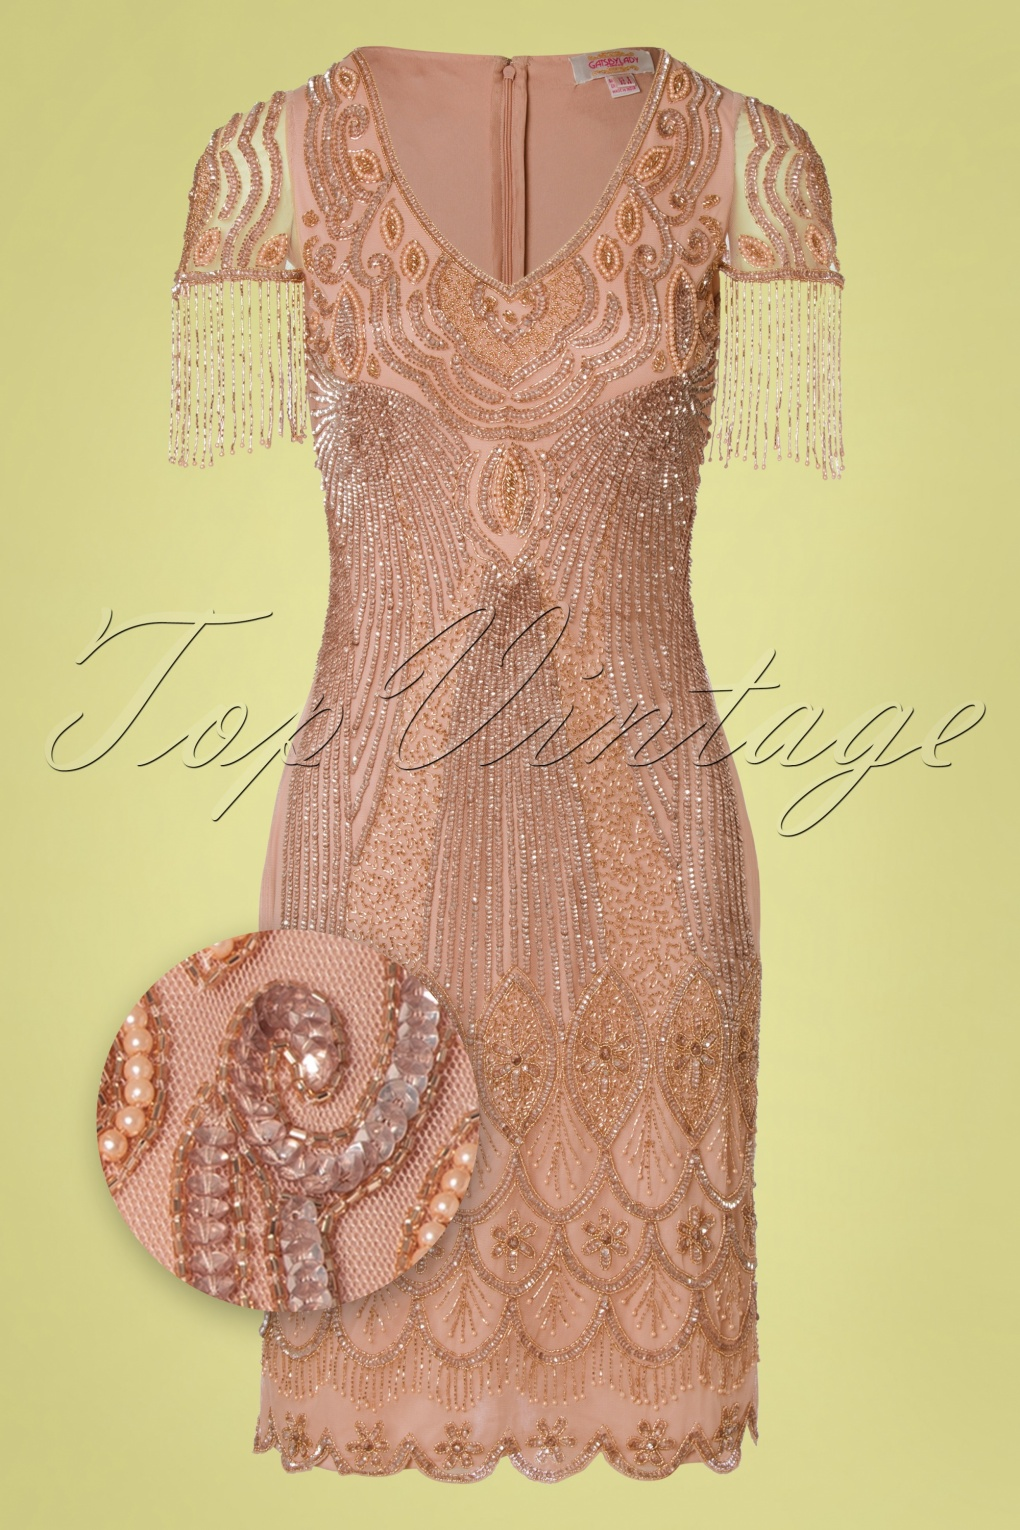 1920s Fashion & Clothing | Roaring 20s Attire 20s Marta Flapper Dress in Blush £116.26 AT vintagedancer.com